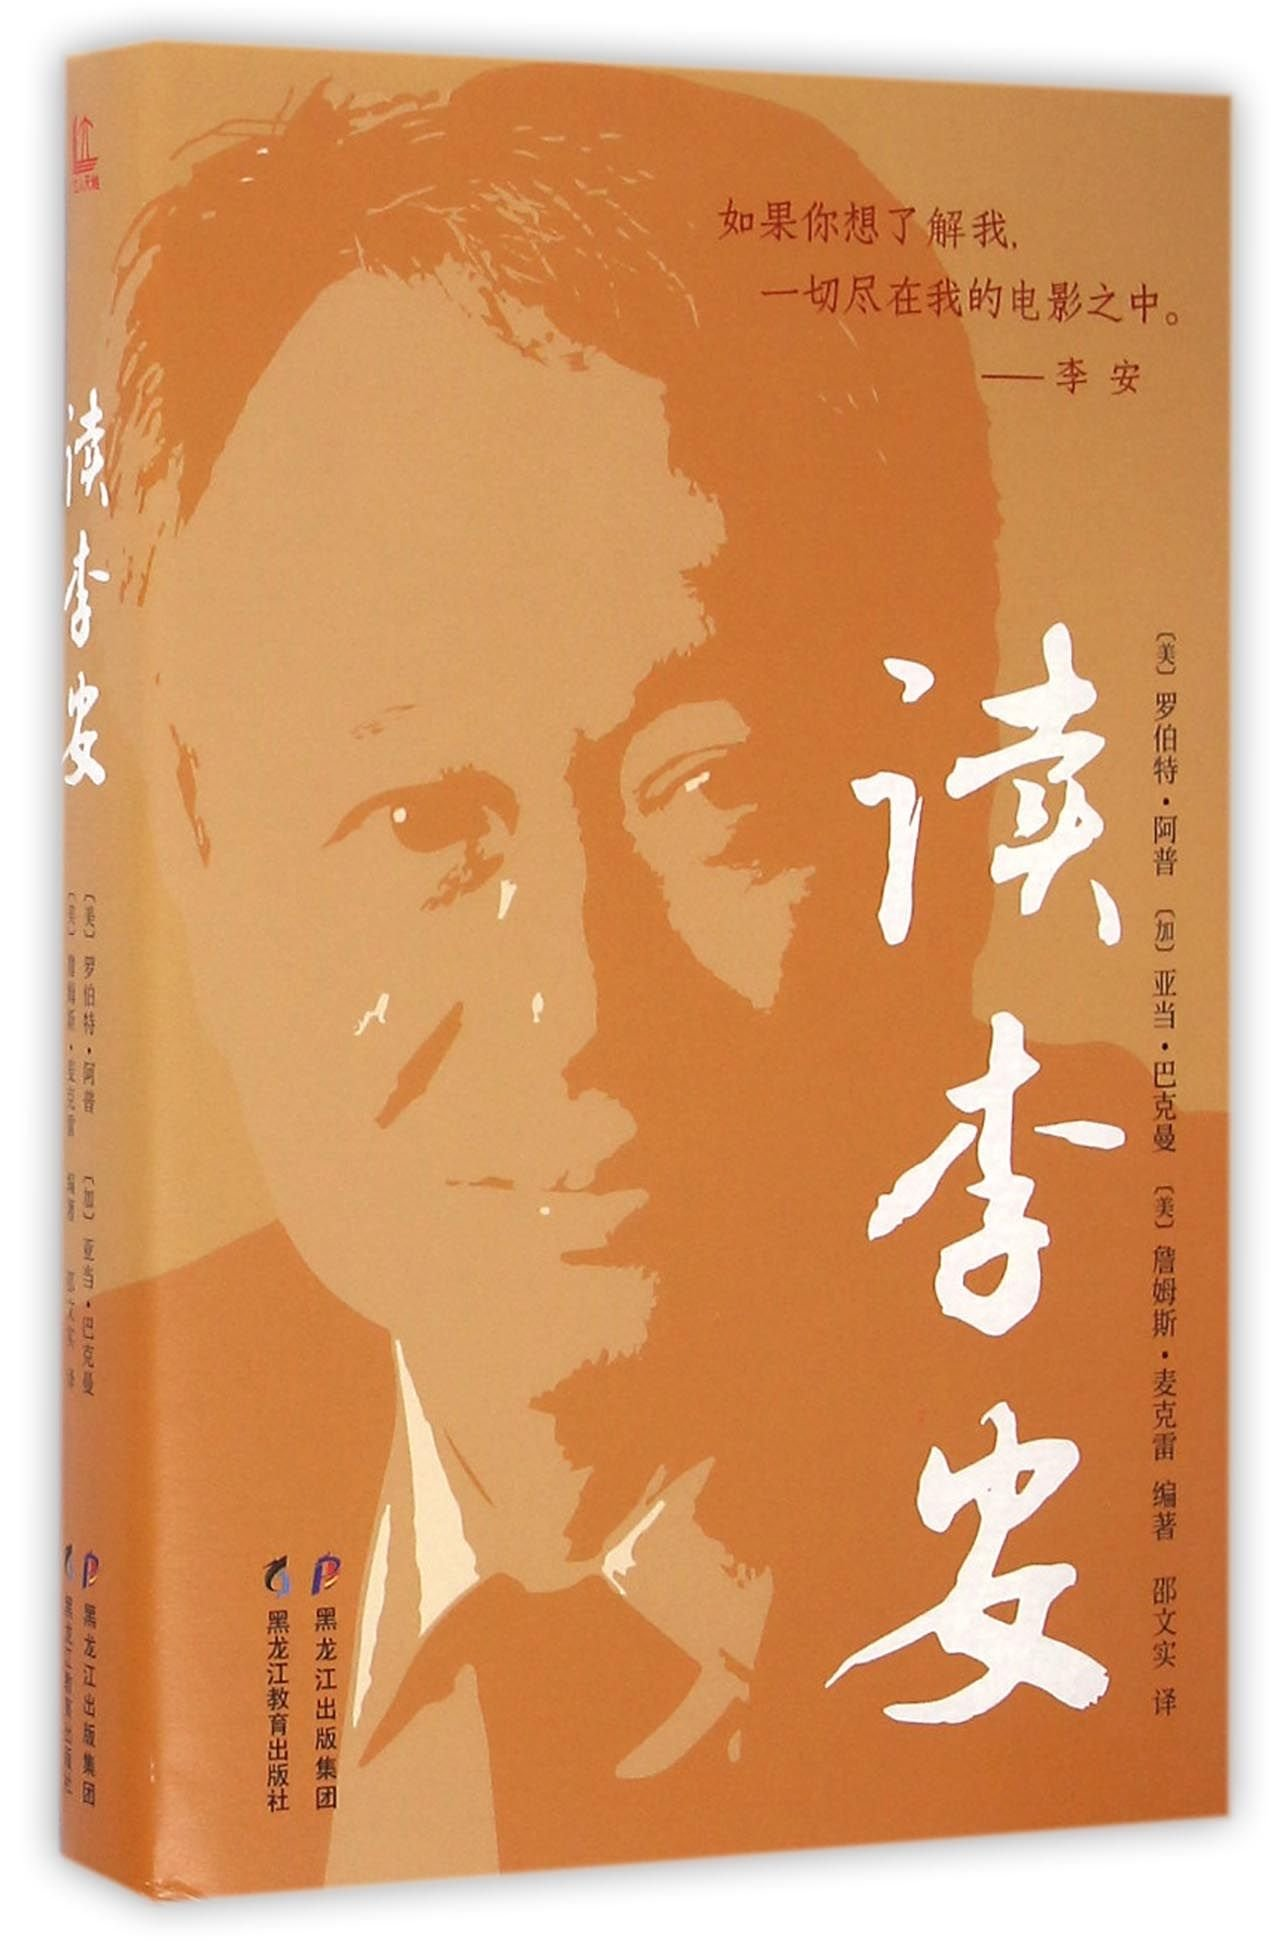 The Philosophy Of Ang Lee (Chinese Edition)